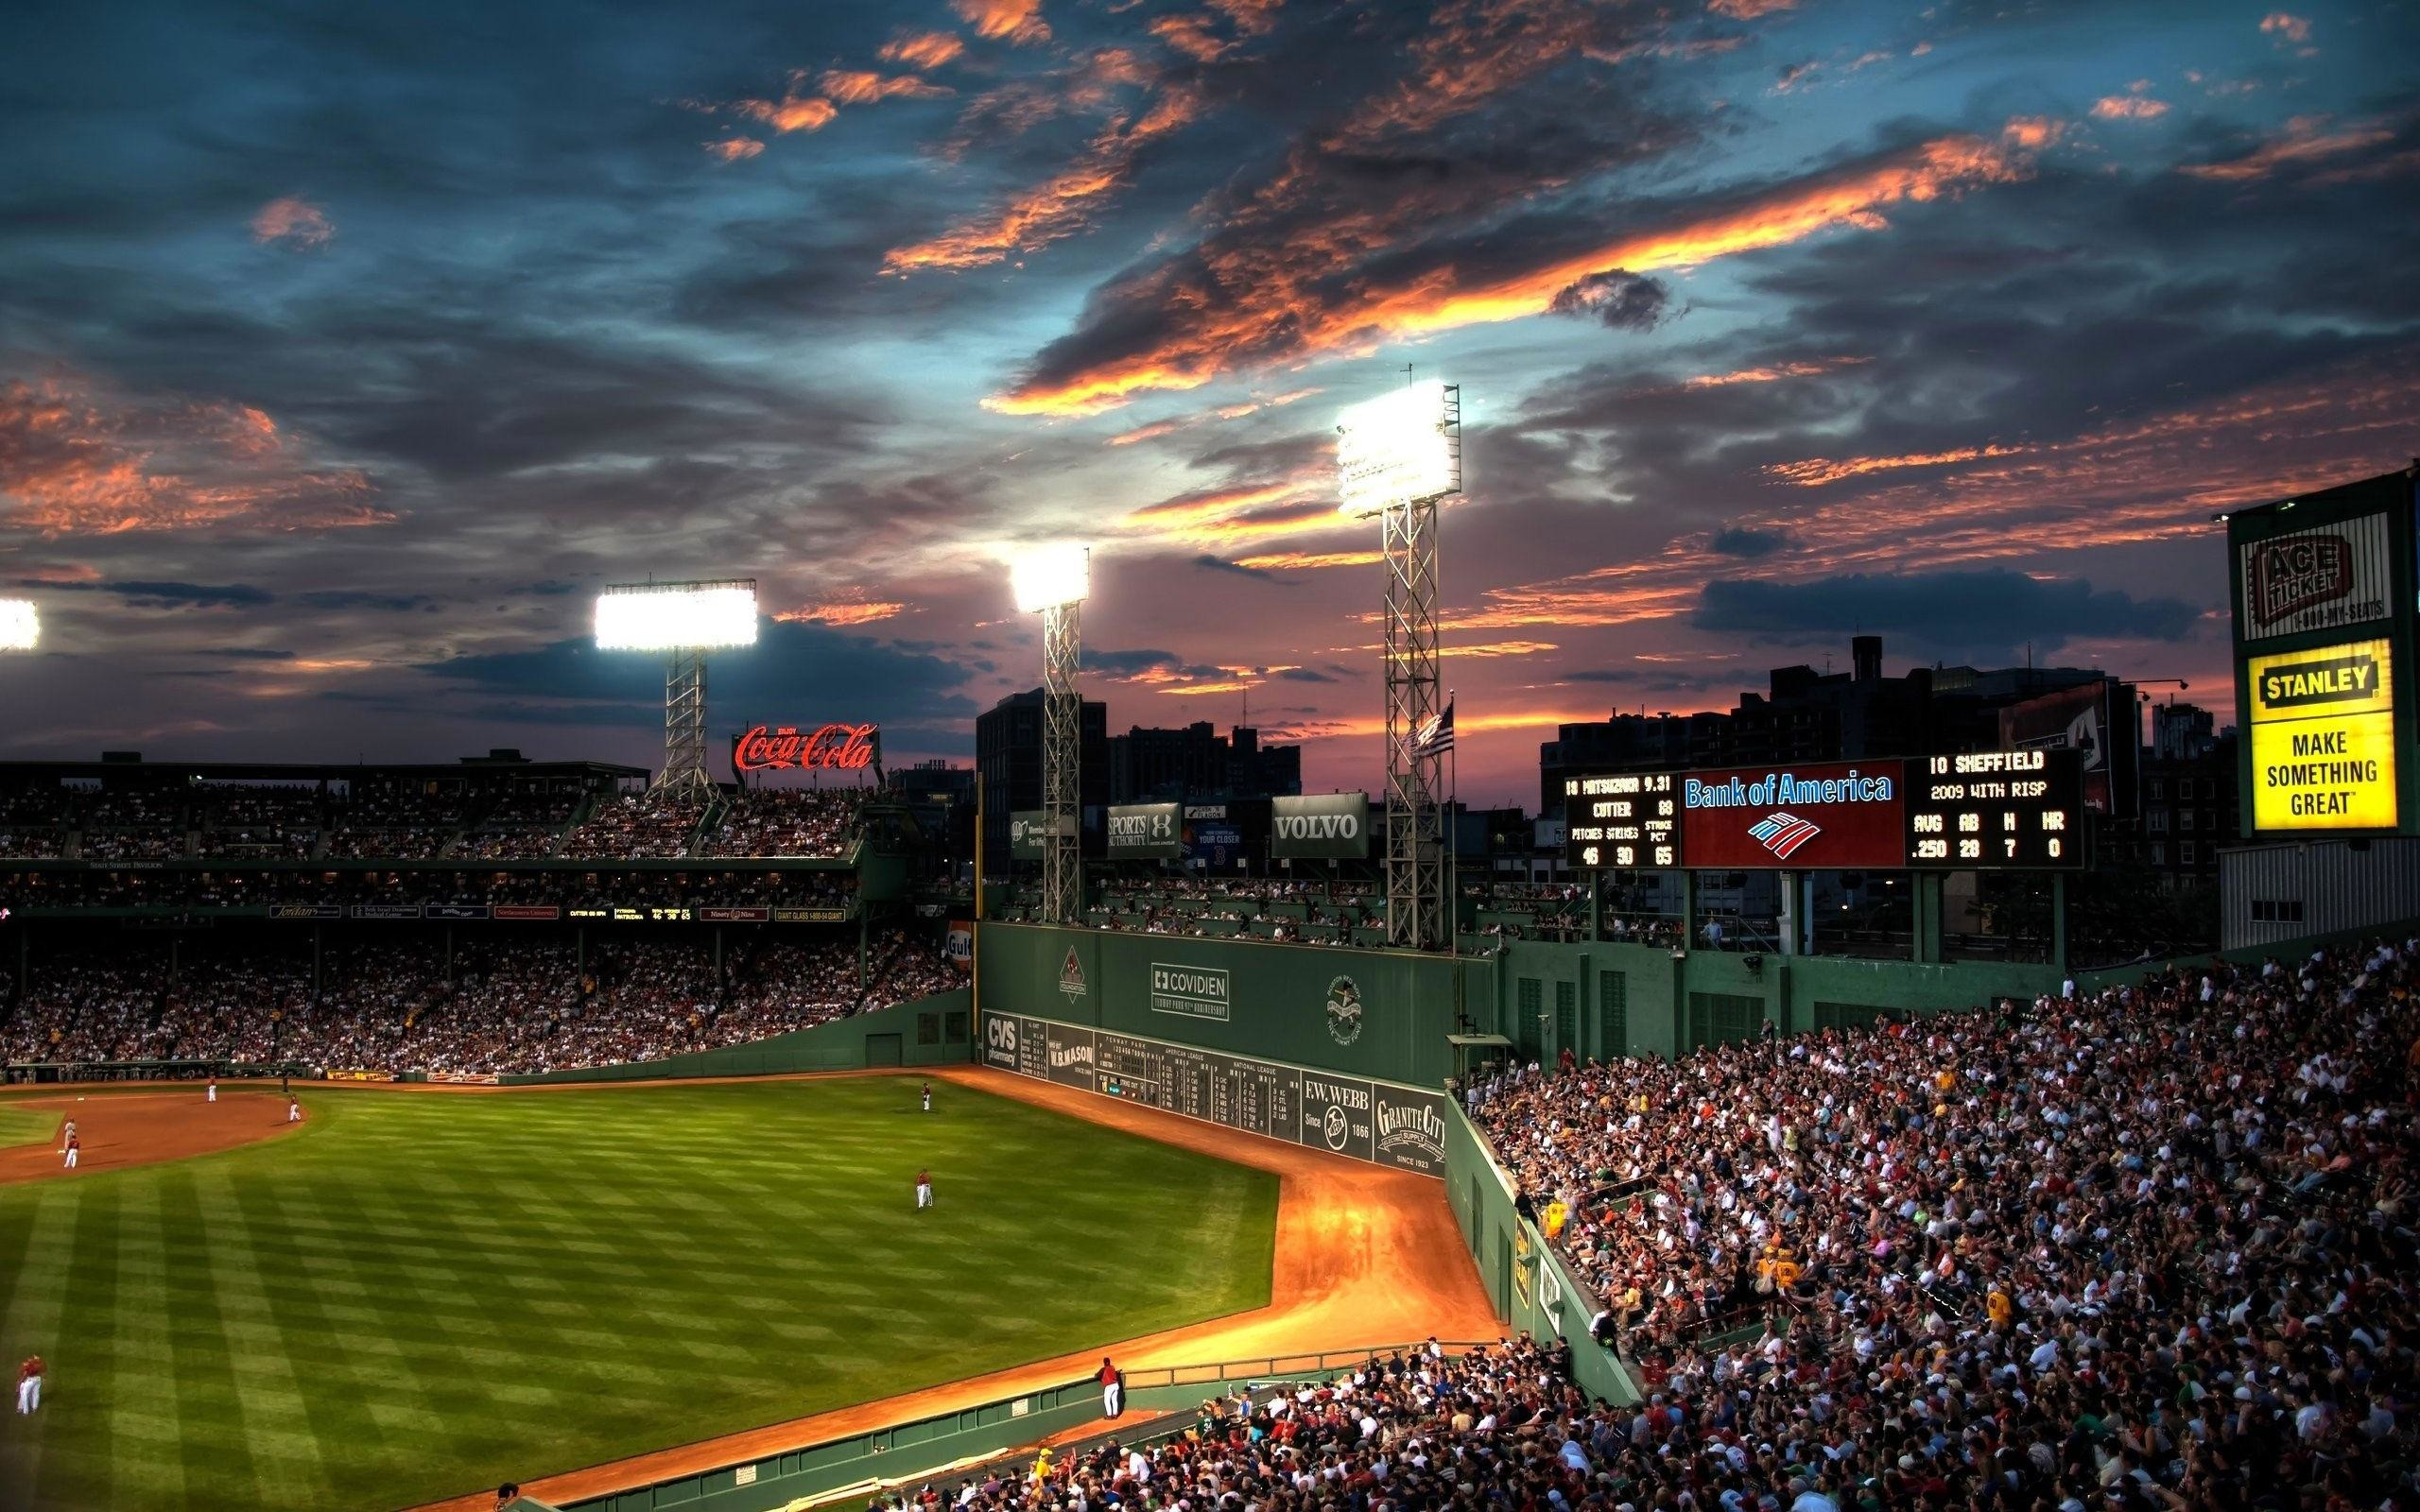 Red sox wallpaper for iphone 68 images 2560x1600 boston red sox wallpapers hd voltagebd Image collections